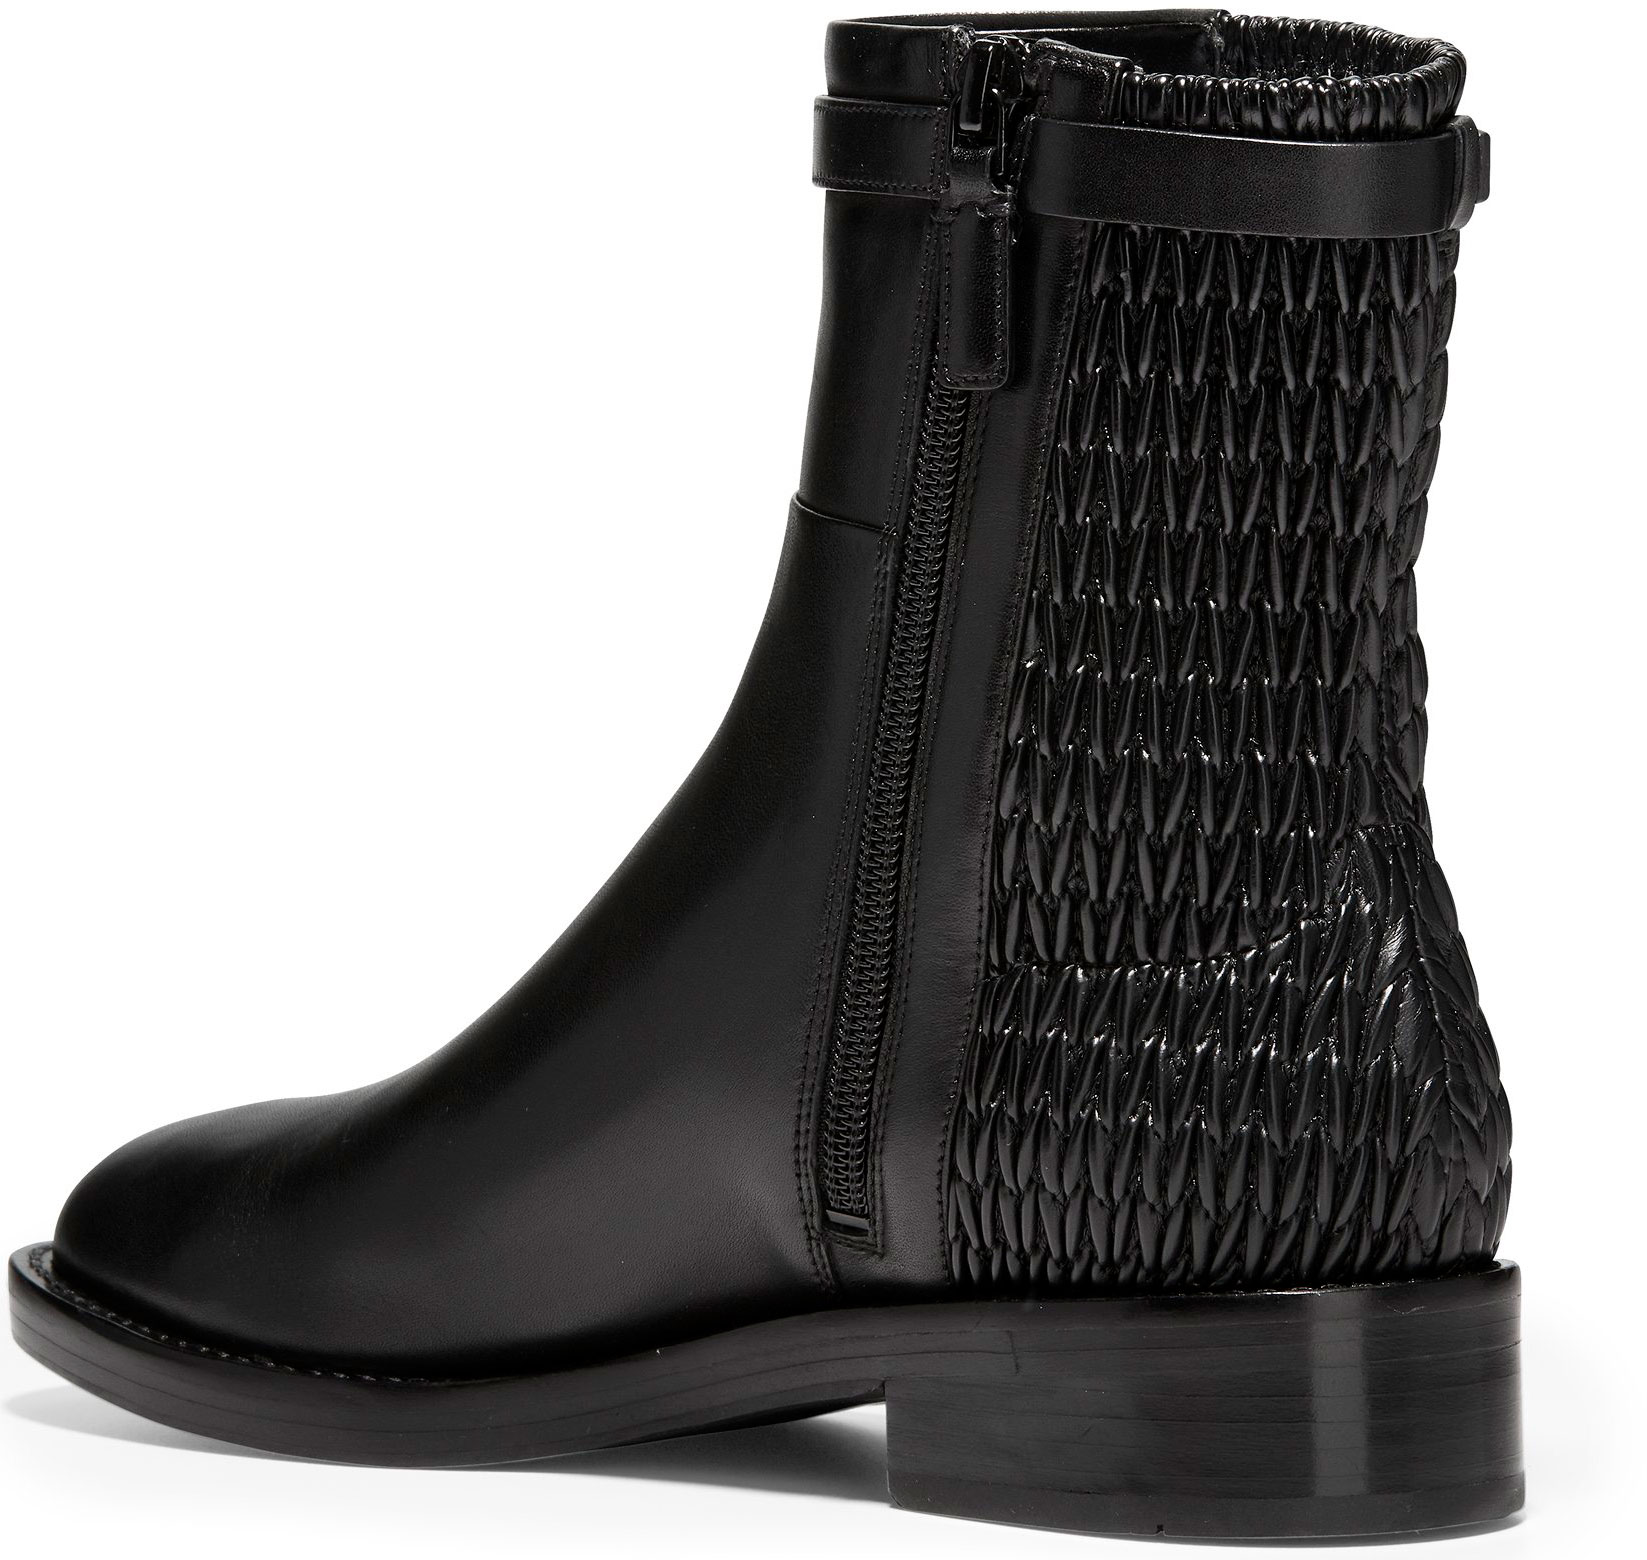 8bae69b83f8a6 Cole Haan Women's Lexi Grand Stretch Strap Bootie W12055 Black Leather-Weave  Stretch. Tap to expand